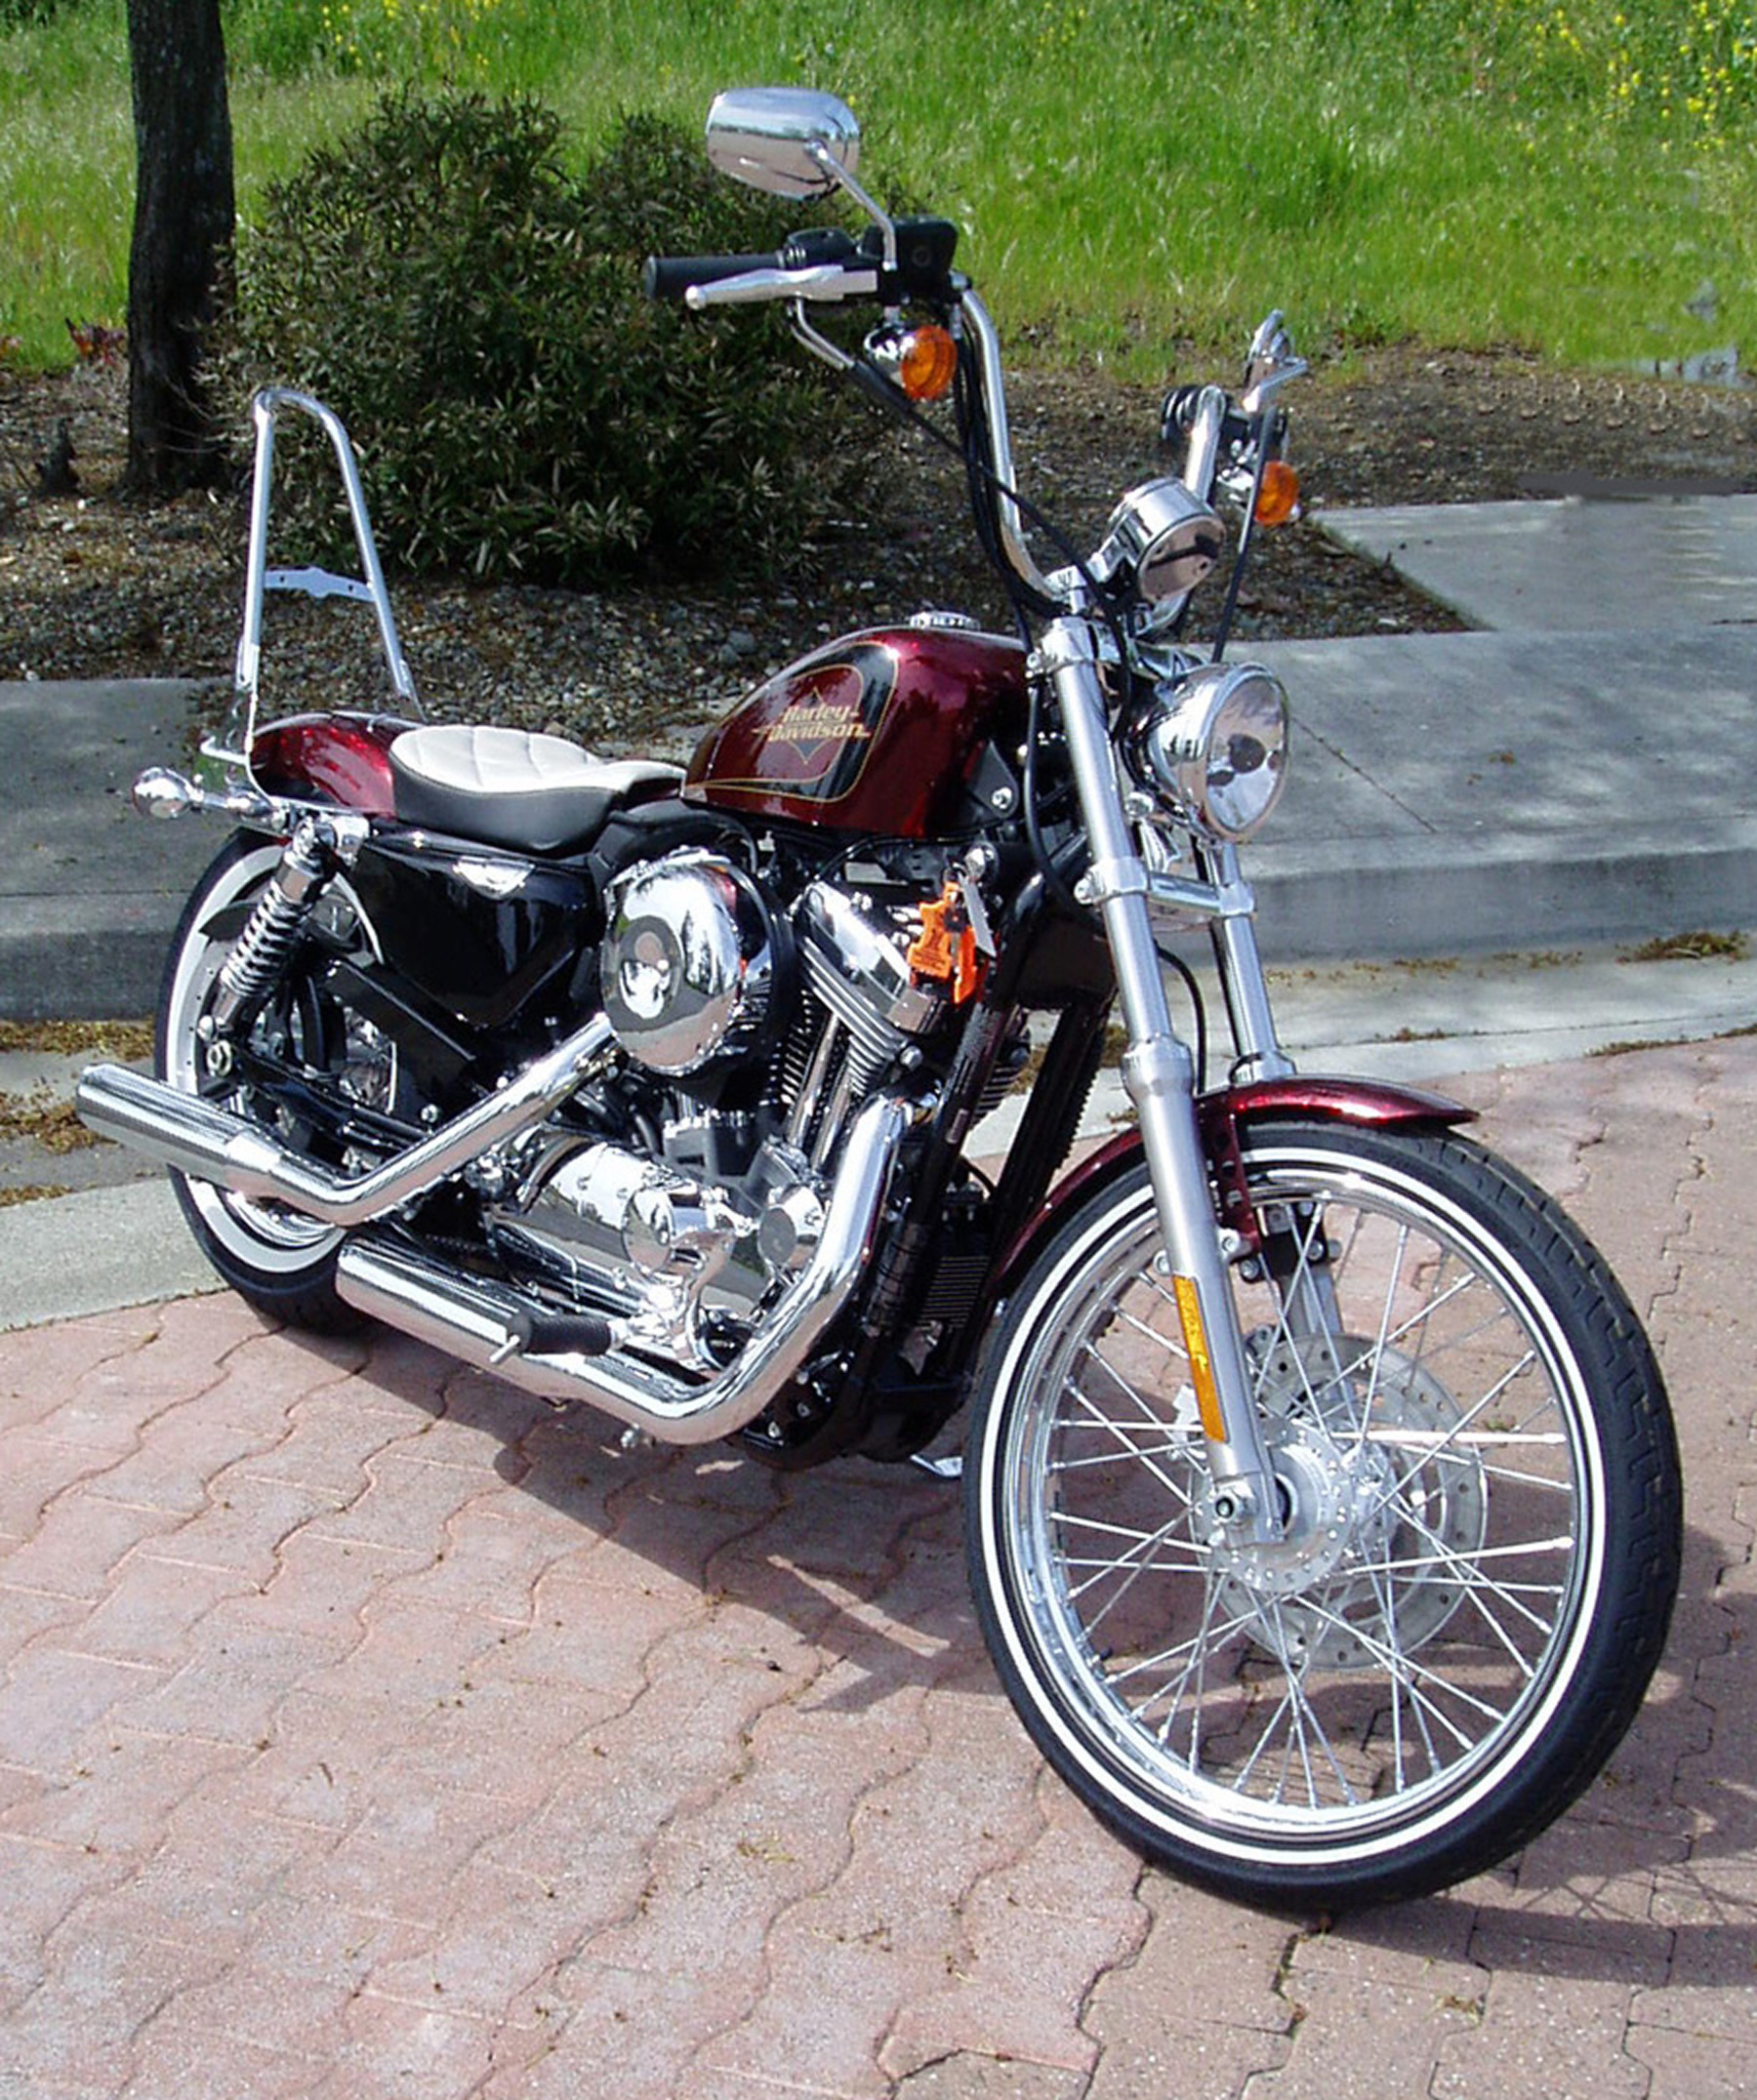 Test Ride 2012 Harley Davidson Sportster Seventy Two Our Auto Expert